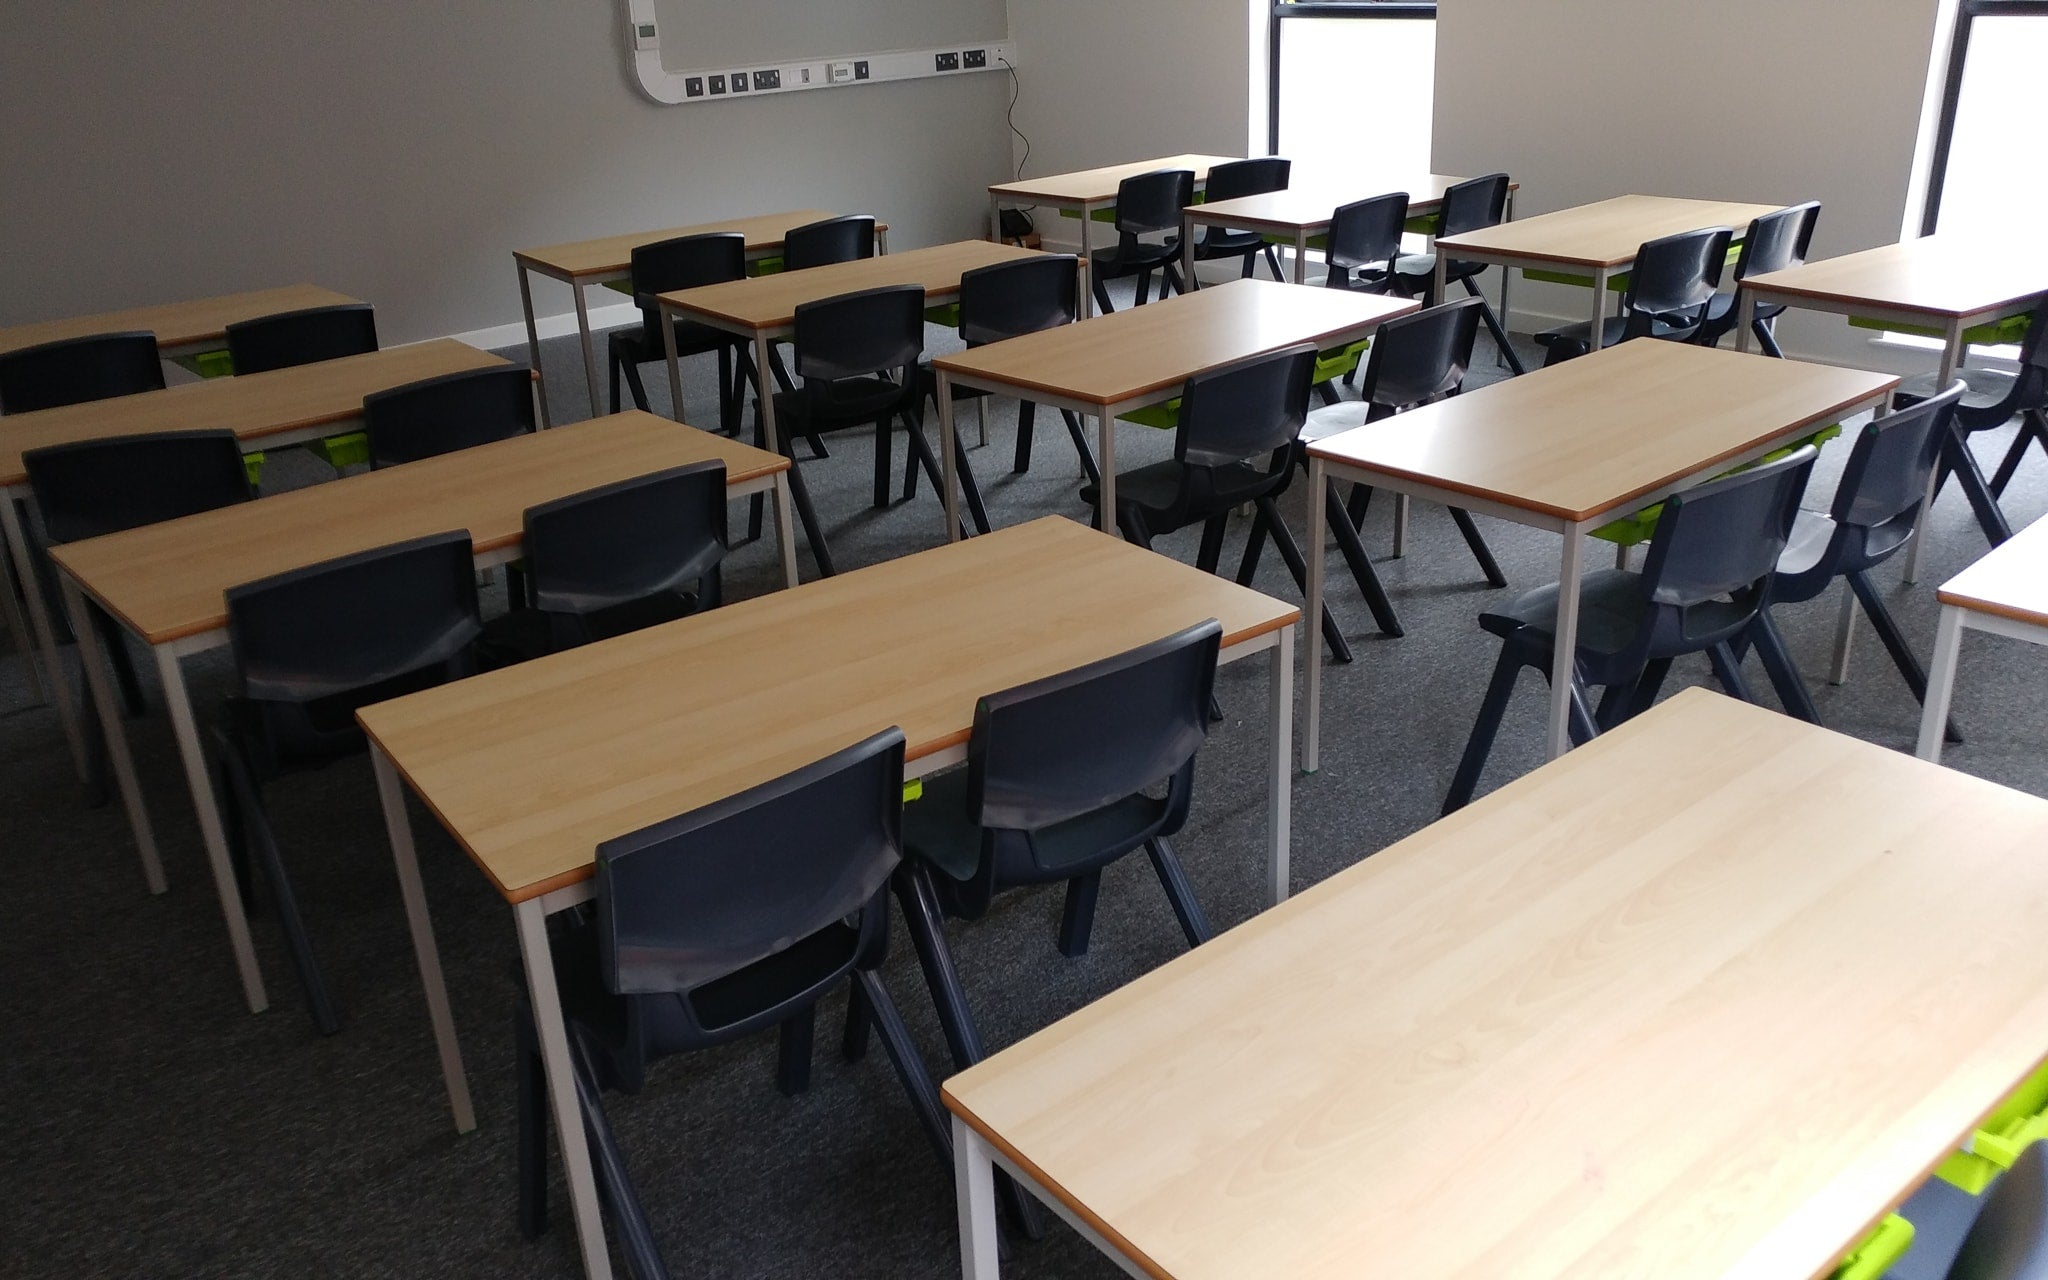 Classroom project four by Four Square Furniture